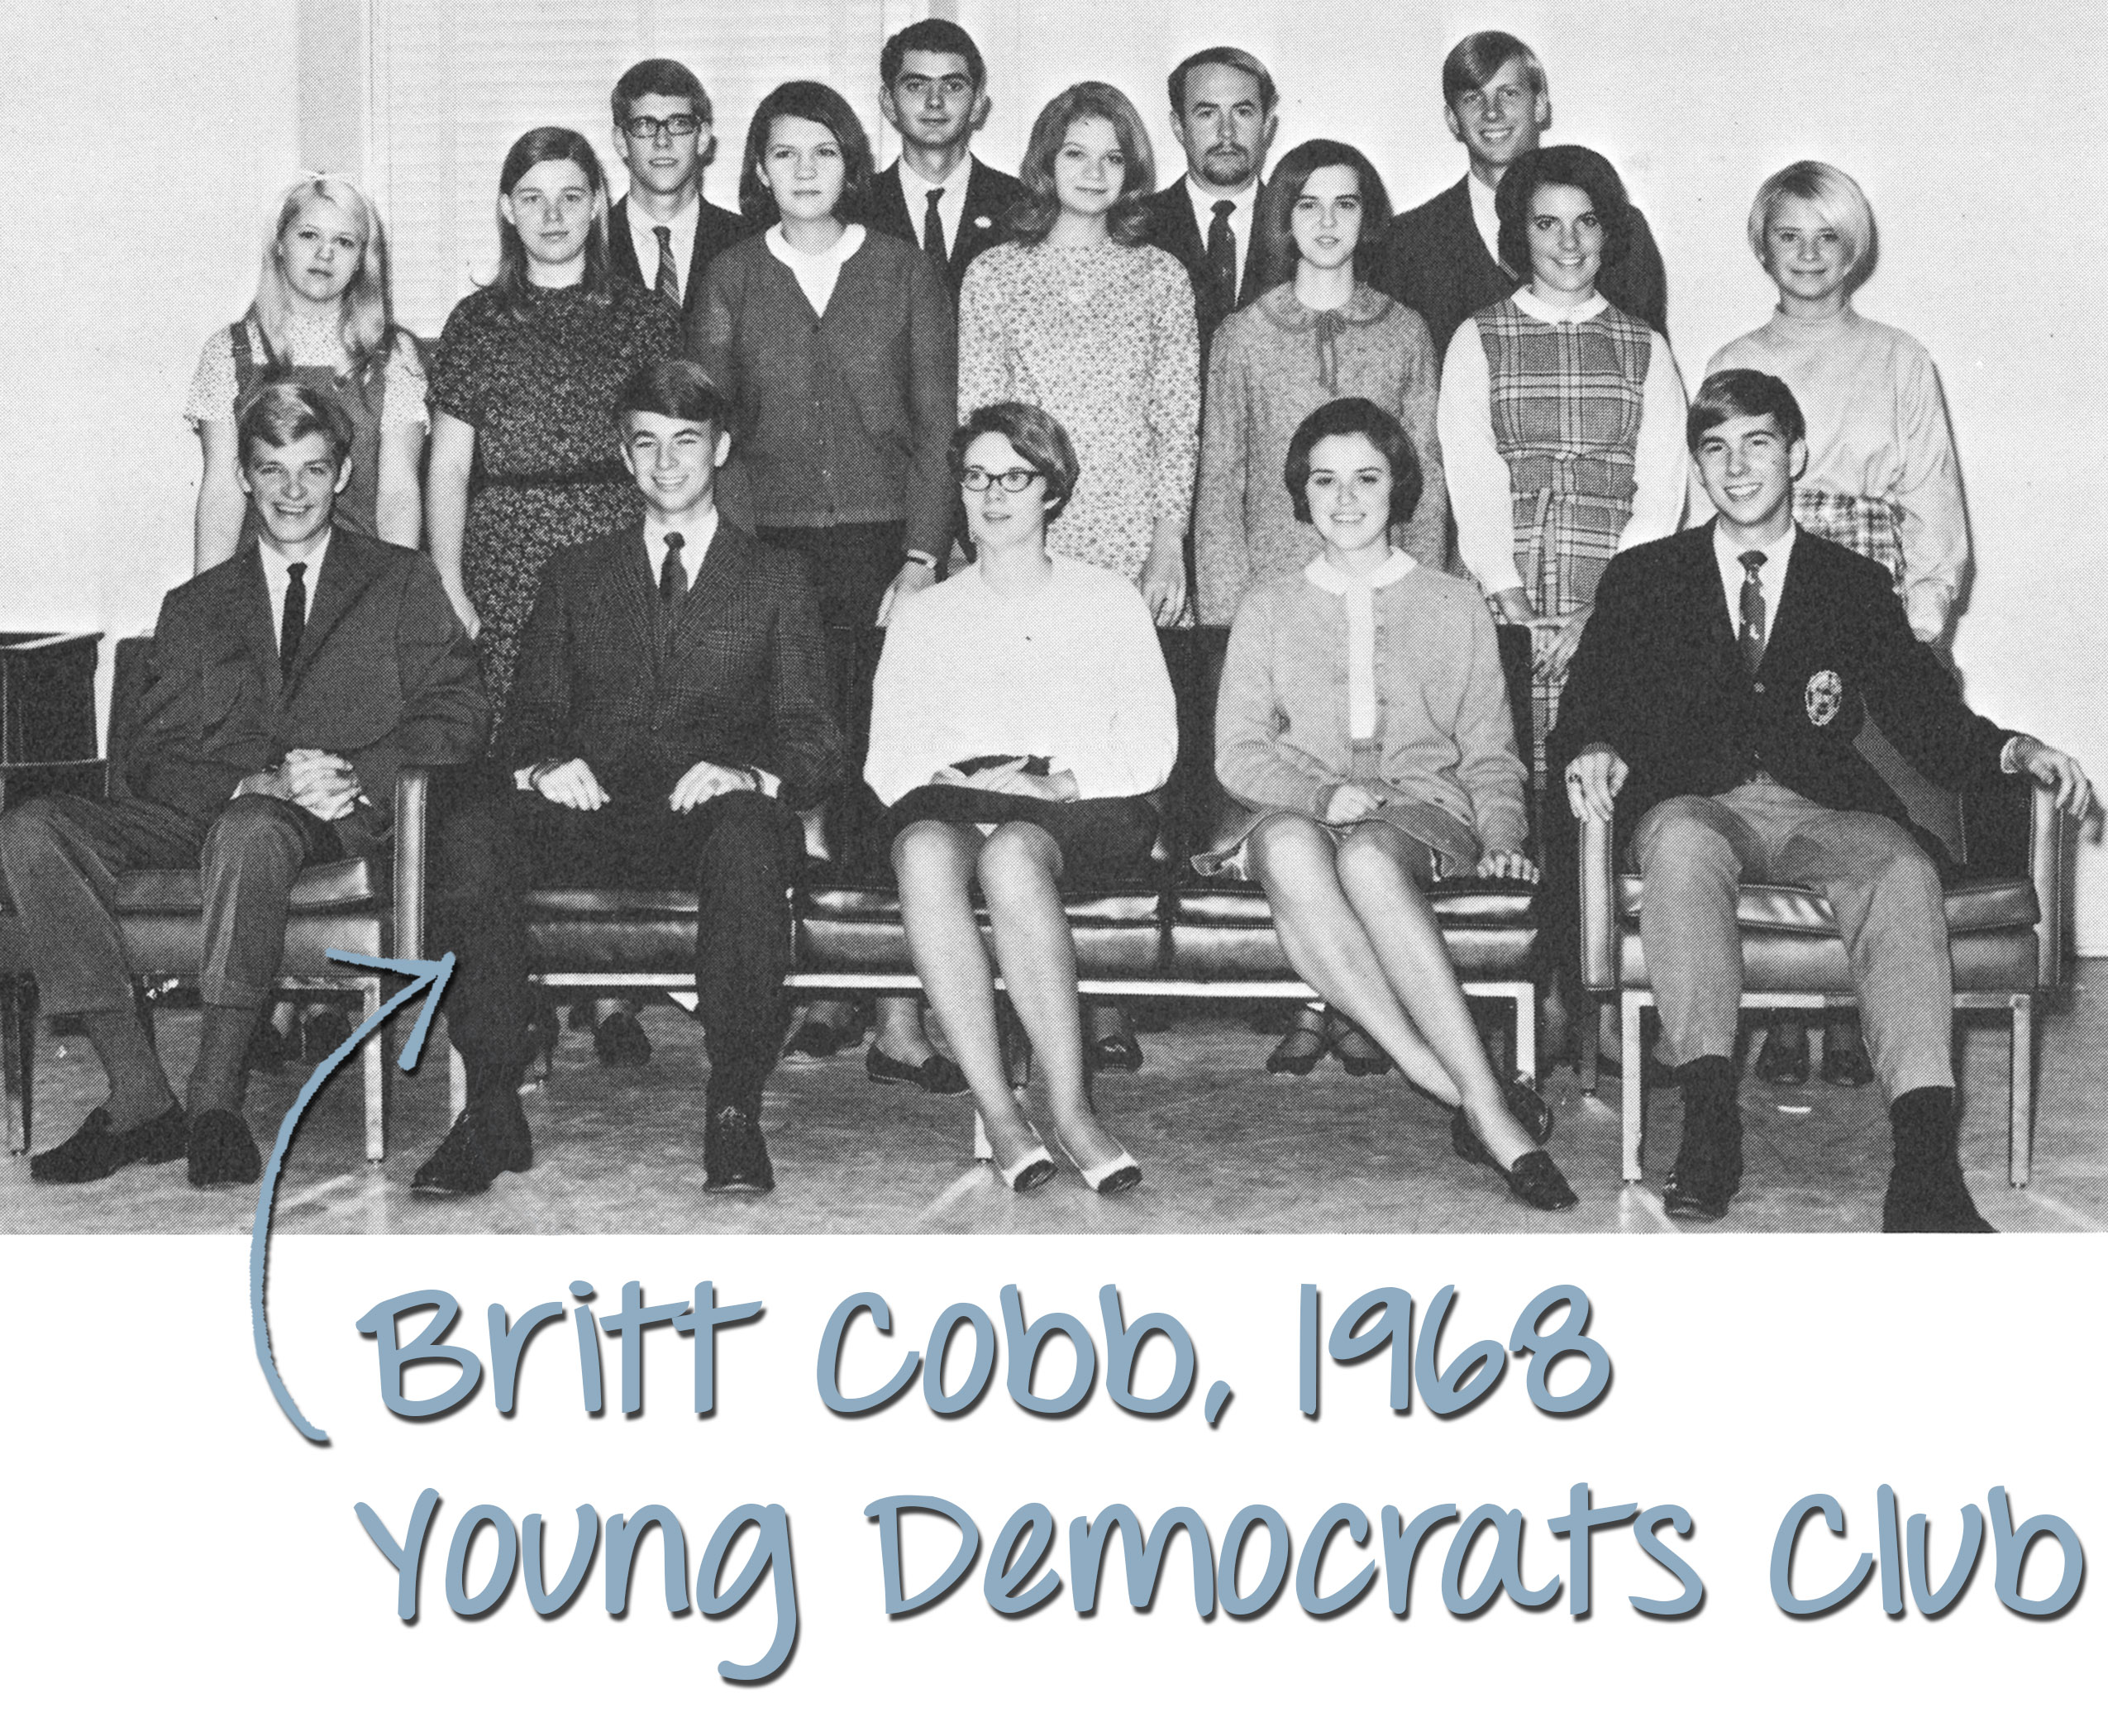 old yearbook photo of students sitting and posing for camera